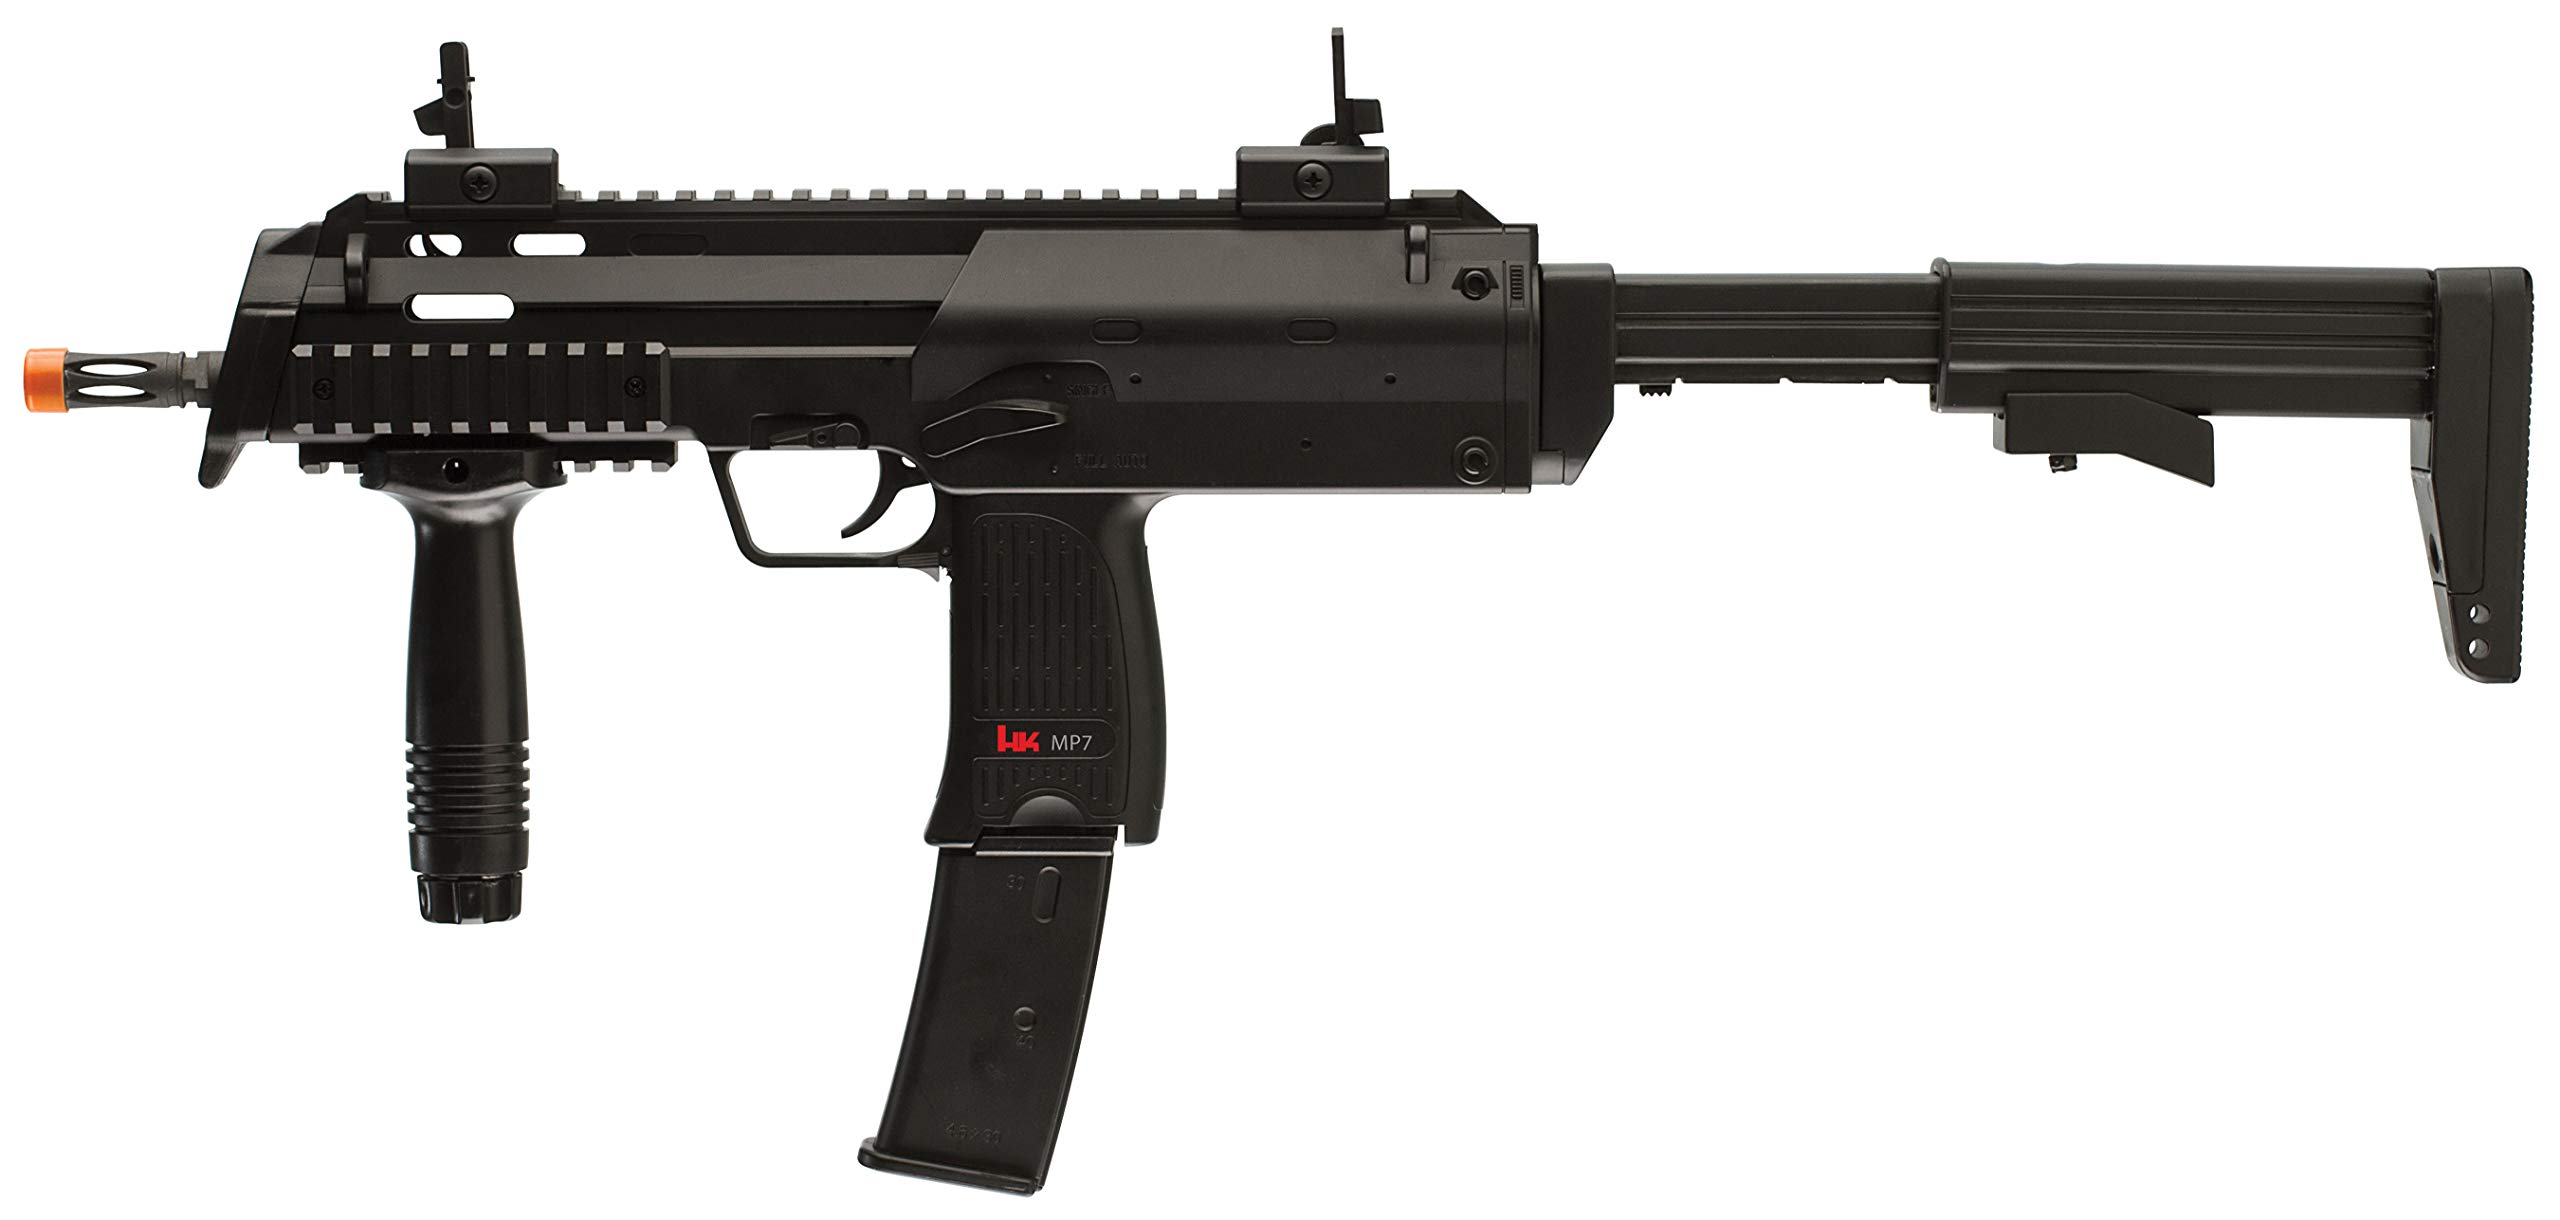 HK Heckler & Koch MP7 AEG Automatic 6mm BB Rifle Airsoft Gun, Black by Elite Force